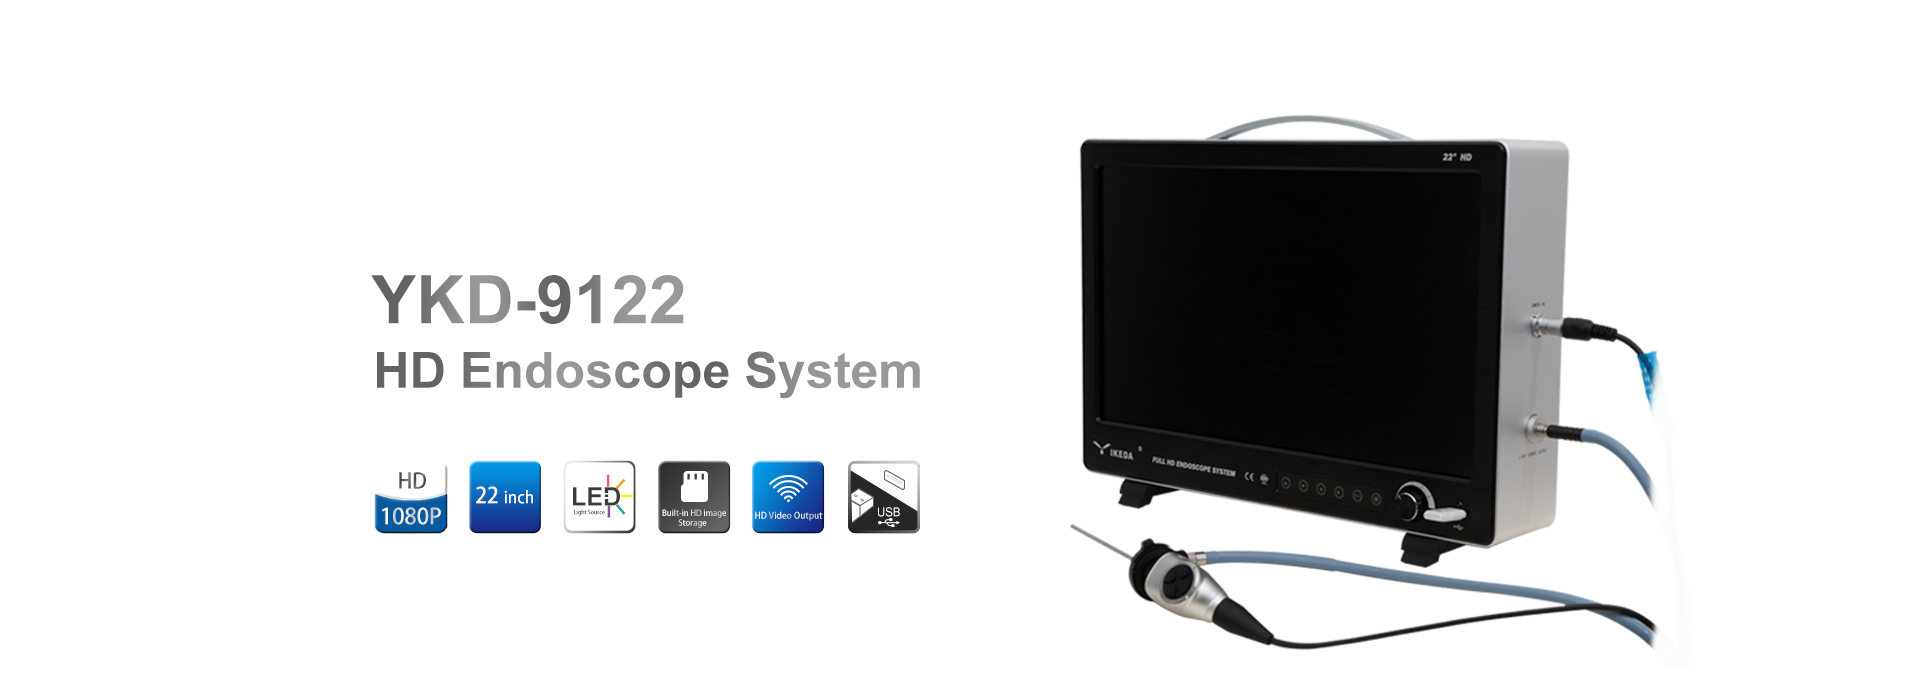 HD endoscope camera